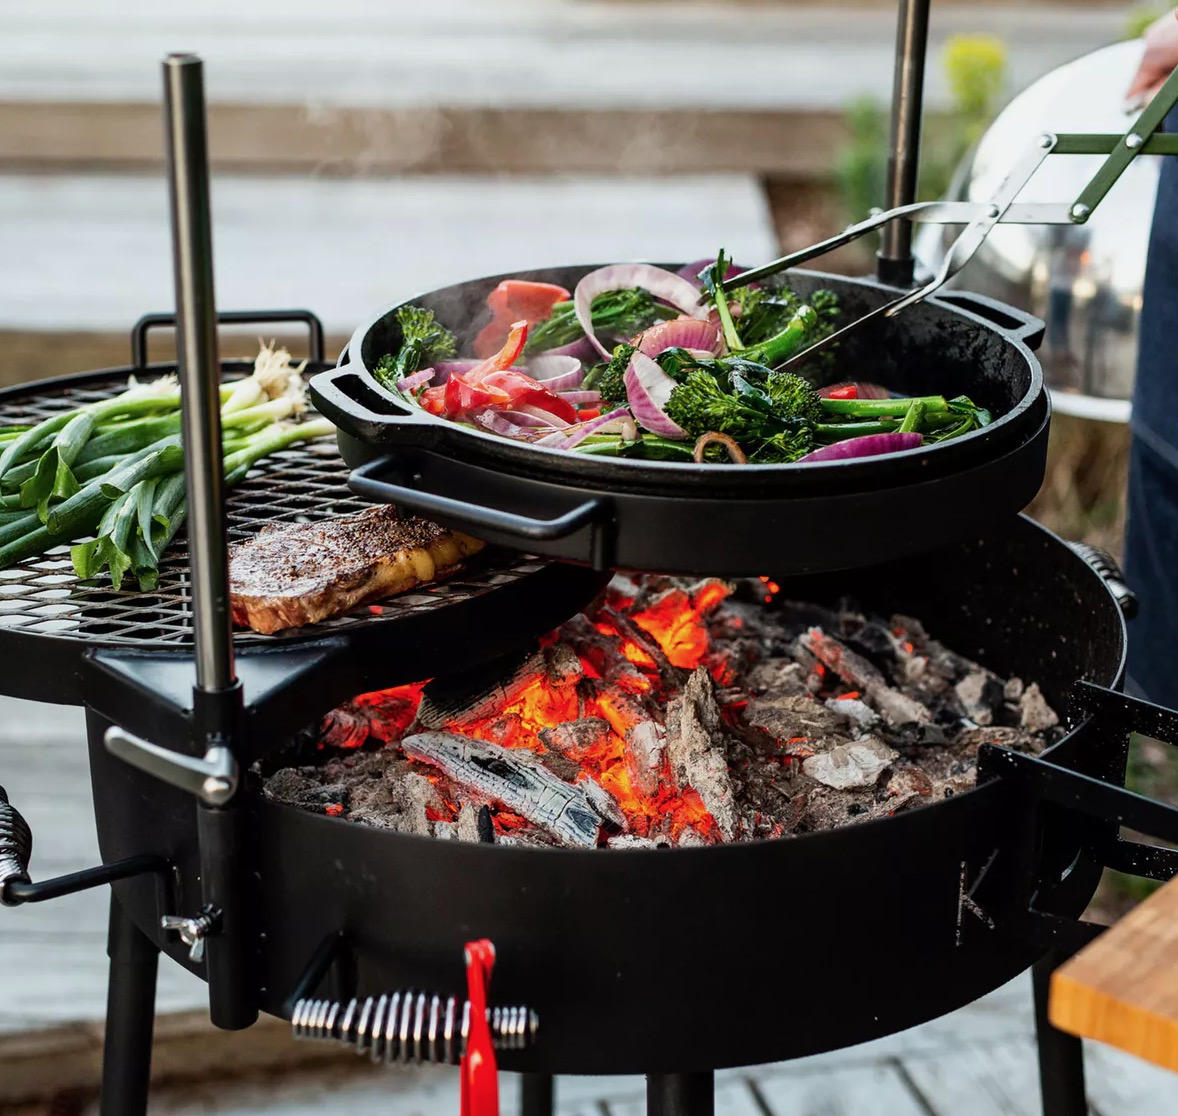 This South African-Inspired Grill Makes The Grill Chef The Nexus Of The Party